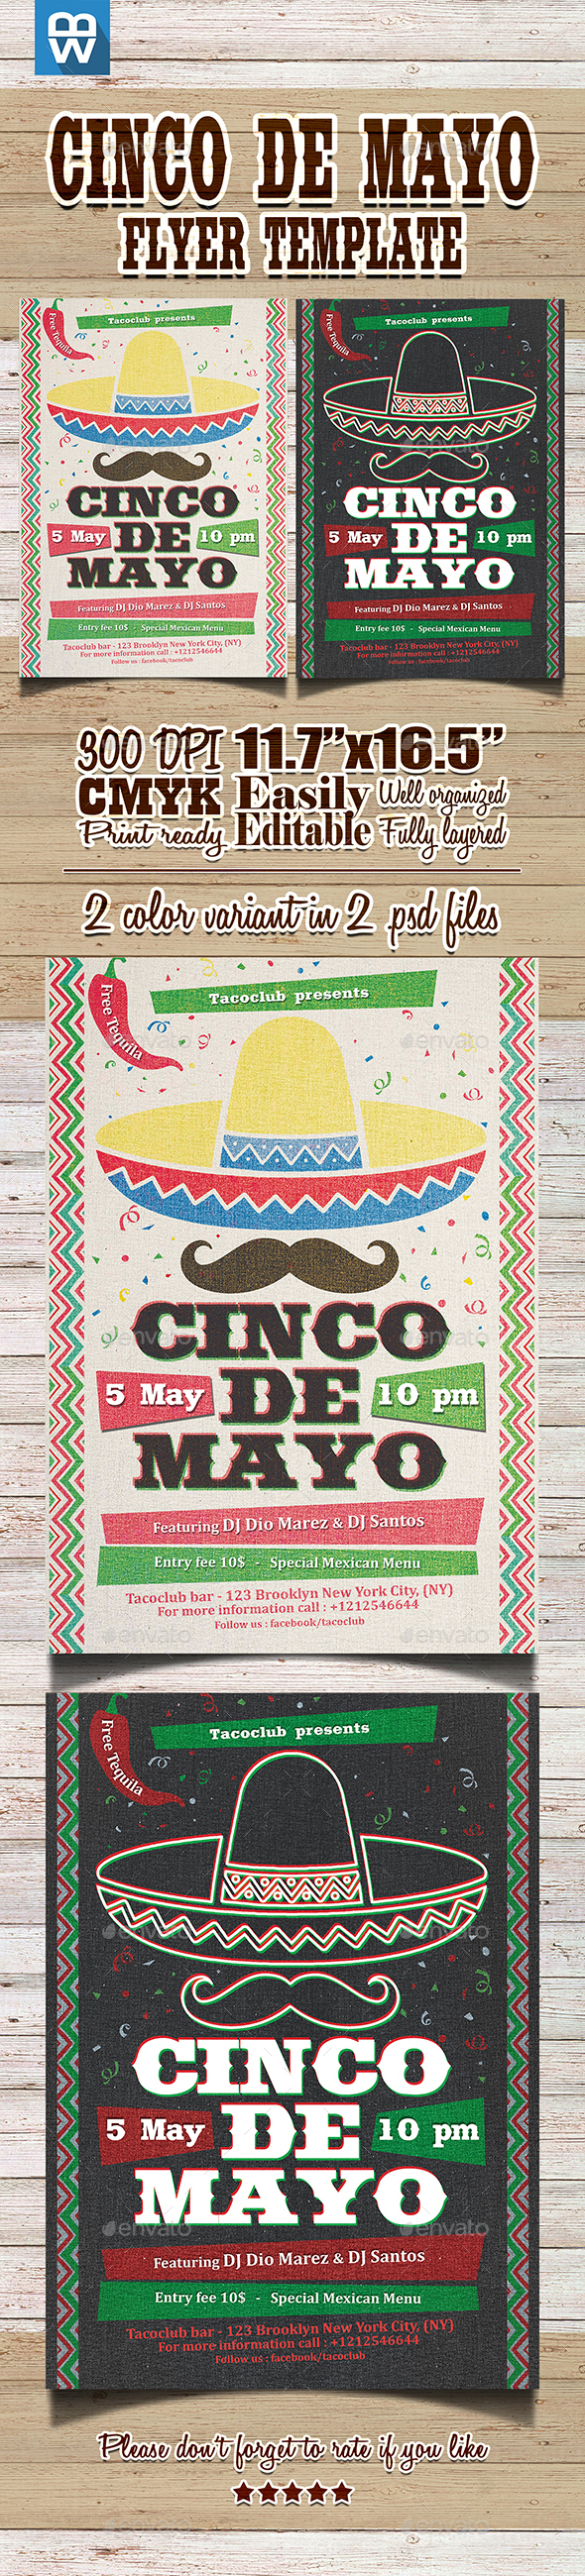 Cinco de Mayo Flyer Template - Events Flyers